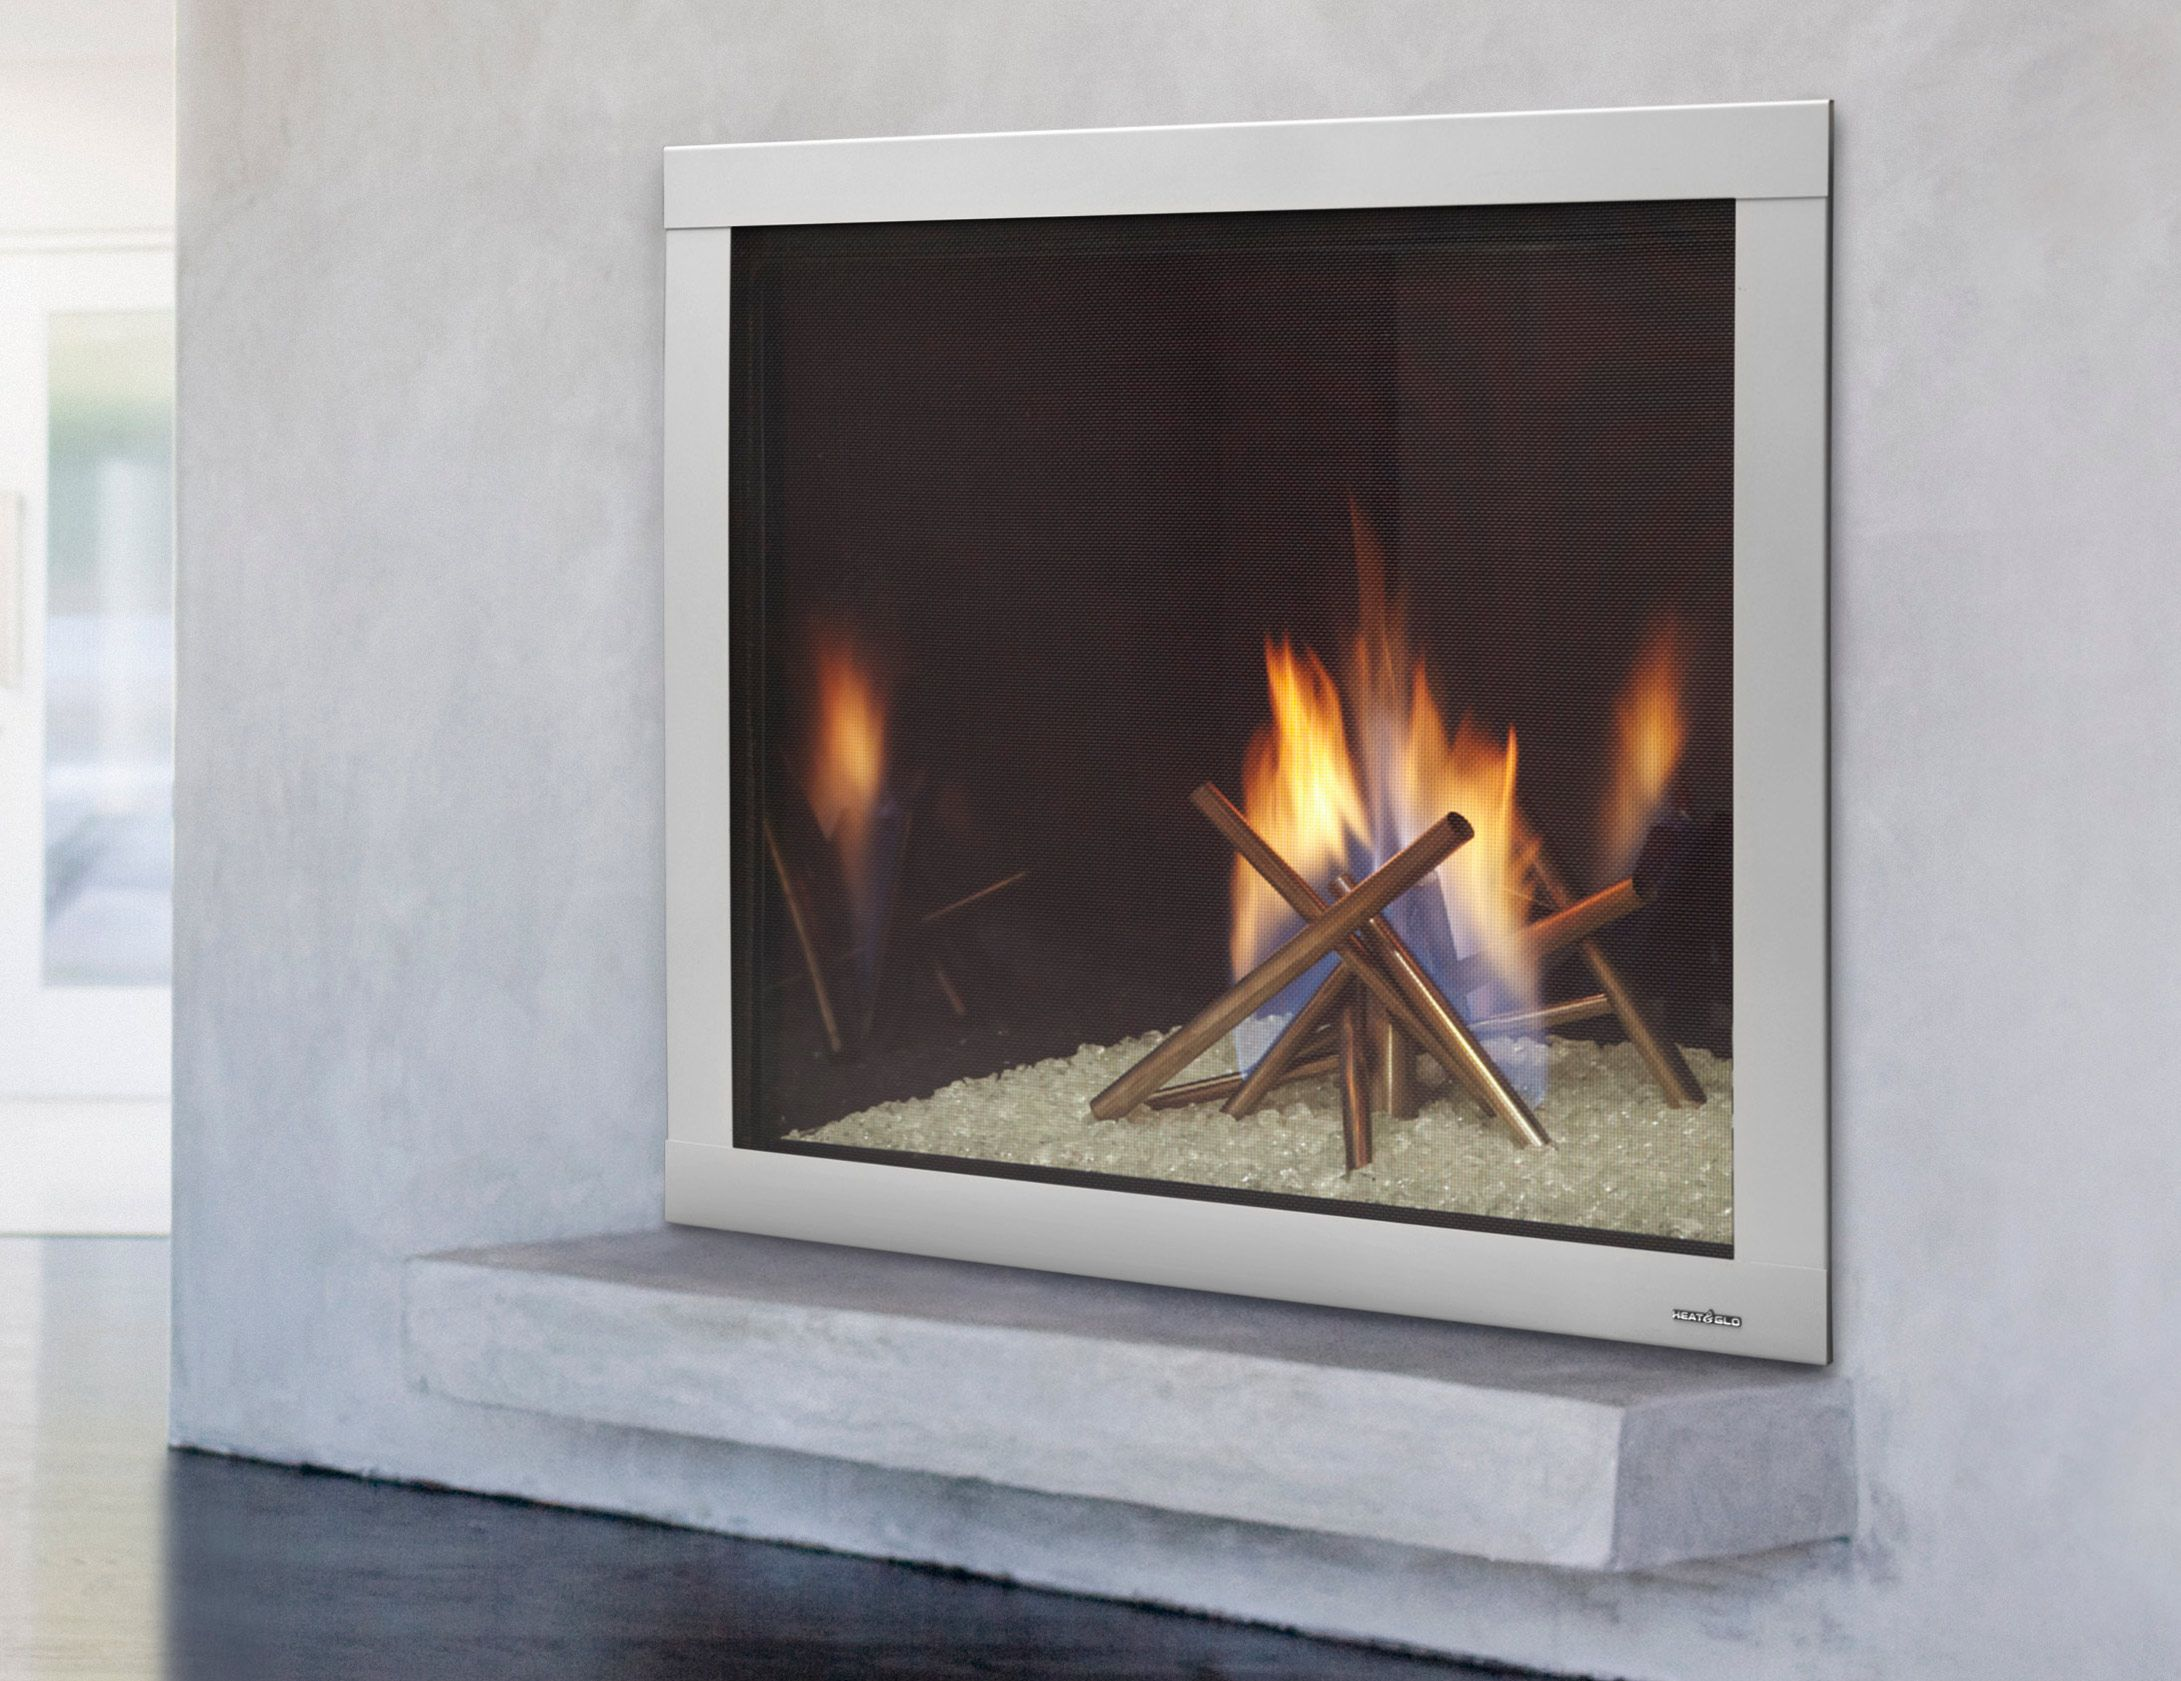 black gas modern divine pin image fireplace ideas